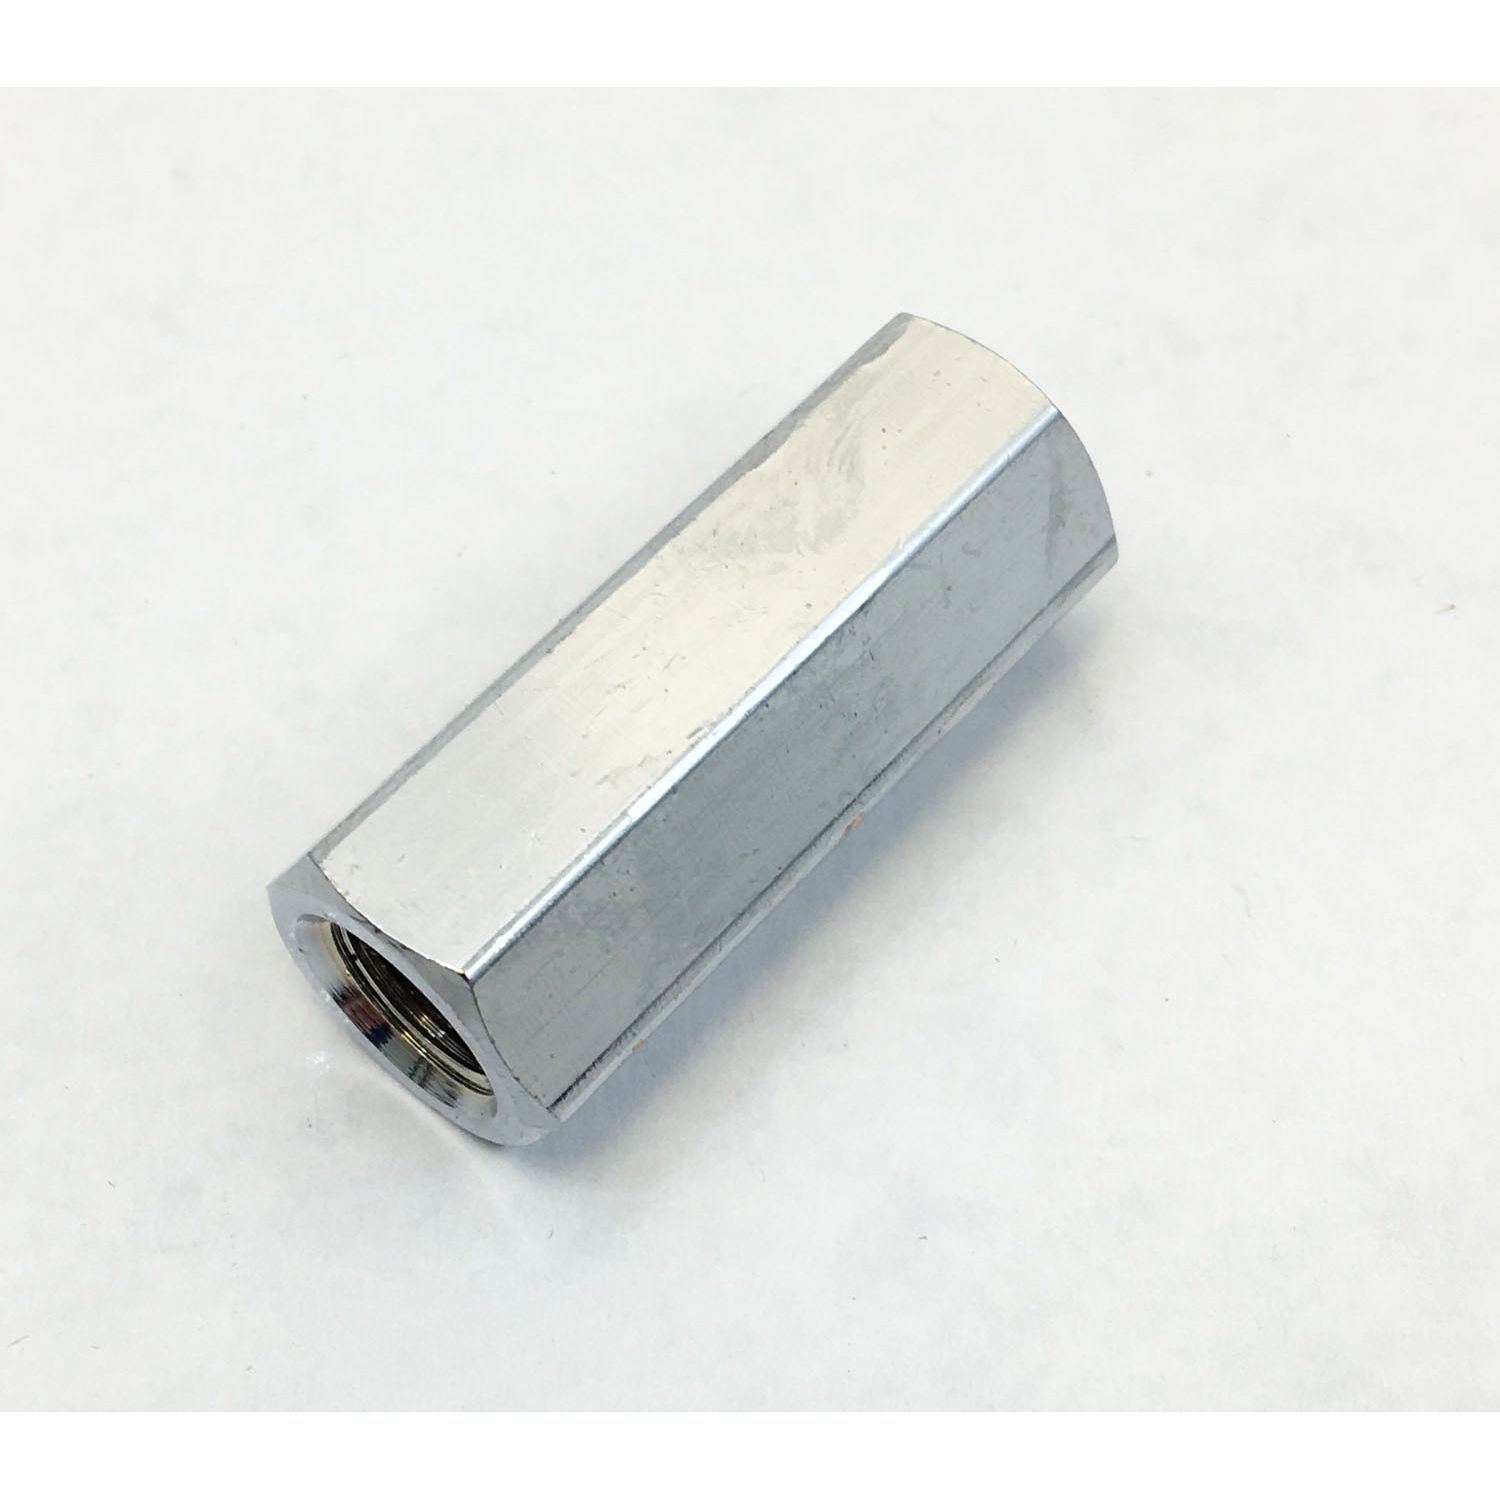 NUT3 - Twinpoint 1 1/2 Inch Long 3/8 X 24 Antenna Nut